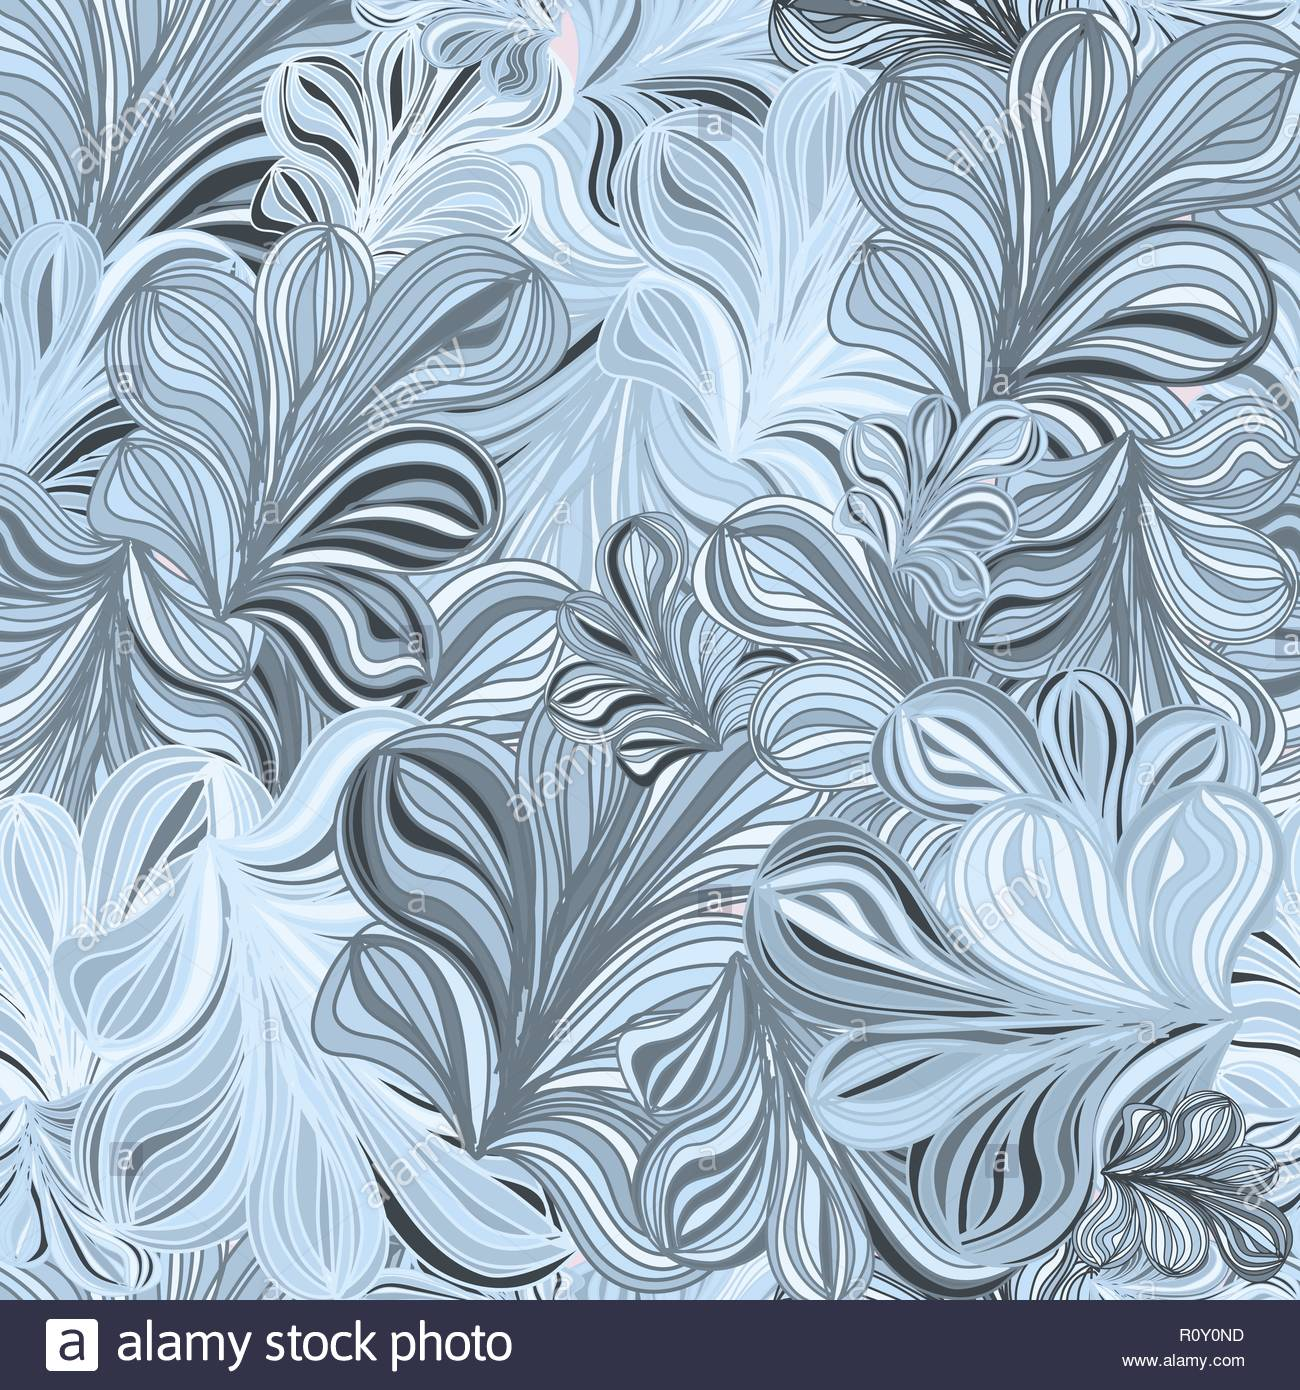 Seamless Pattern For Fabric Interior Design Gift Wrapping